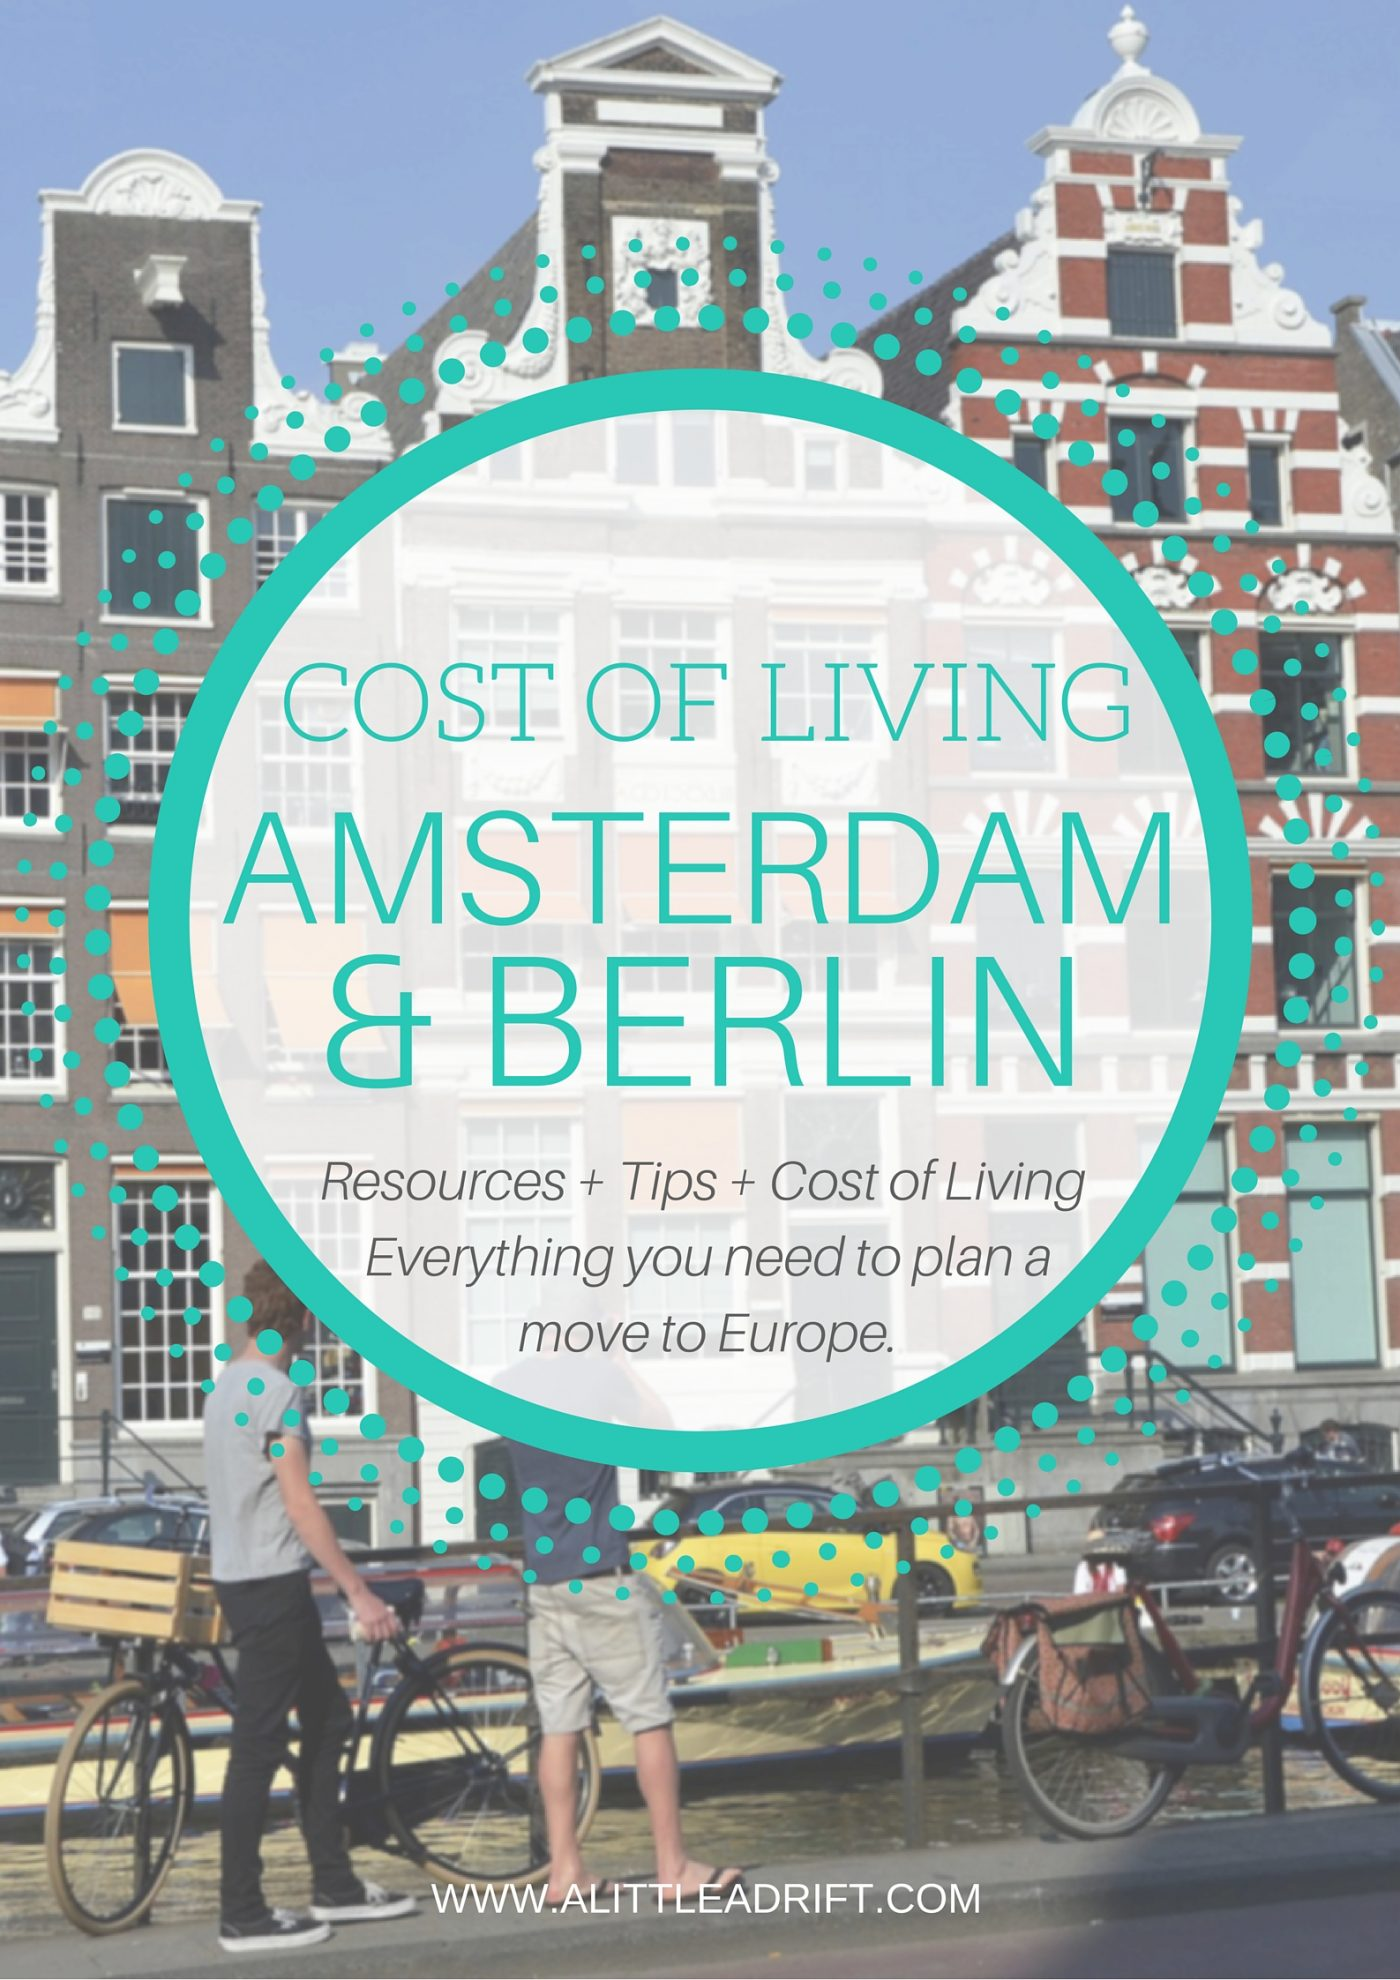 Berlin & Amsterdam: How Much Does it Cost to Live? (2019)